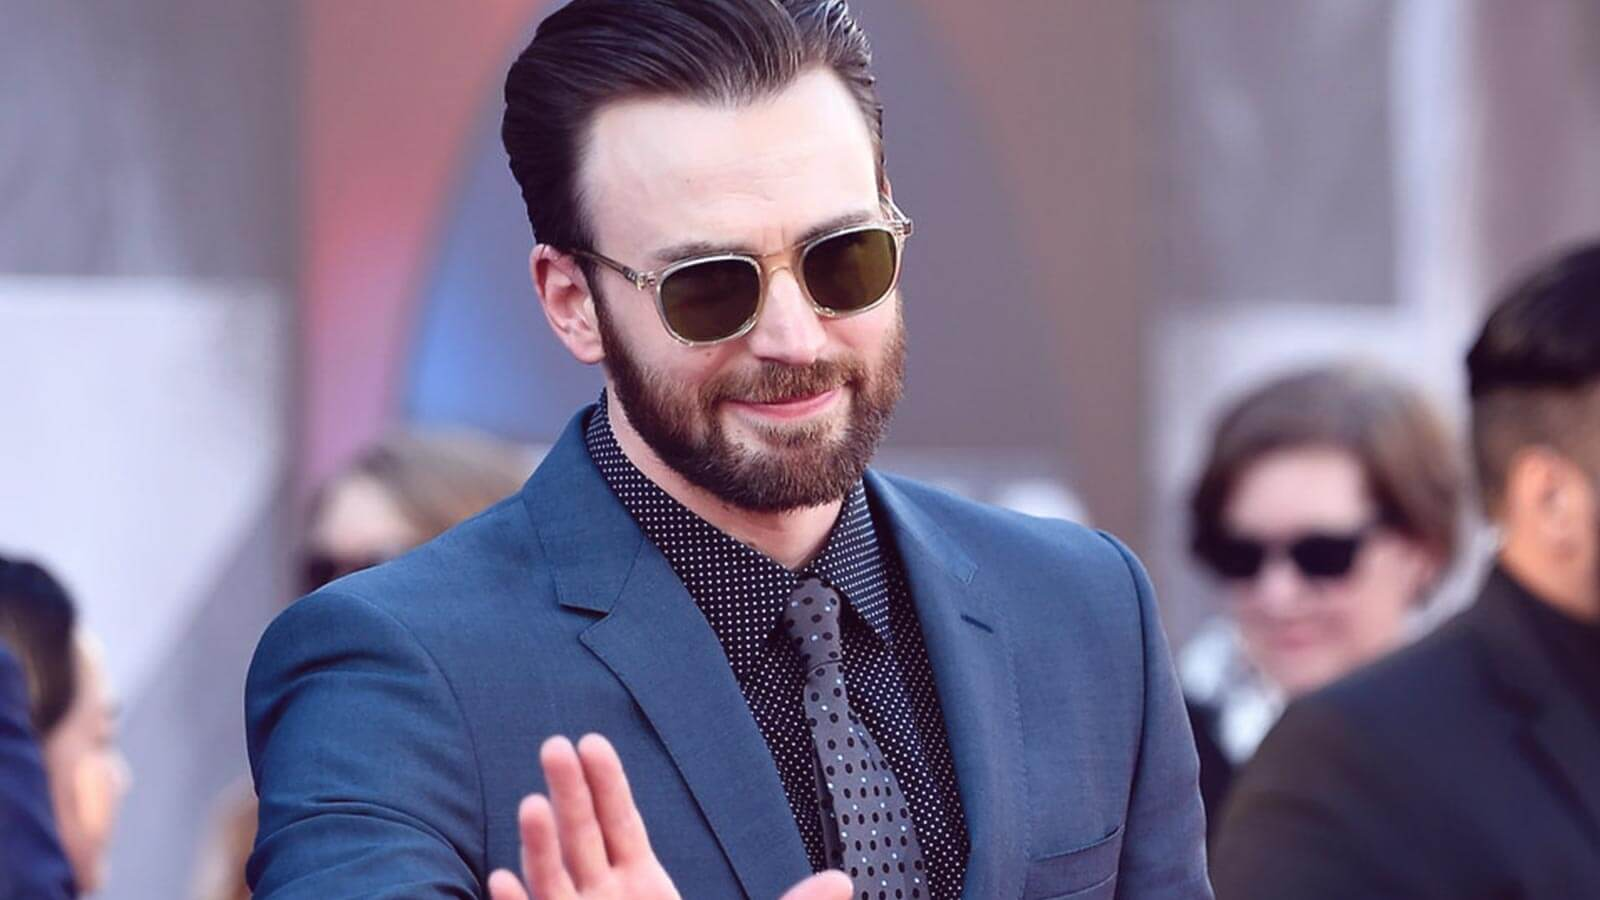 Perk up like Captain America with Chris Evans Glasses